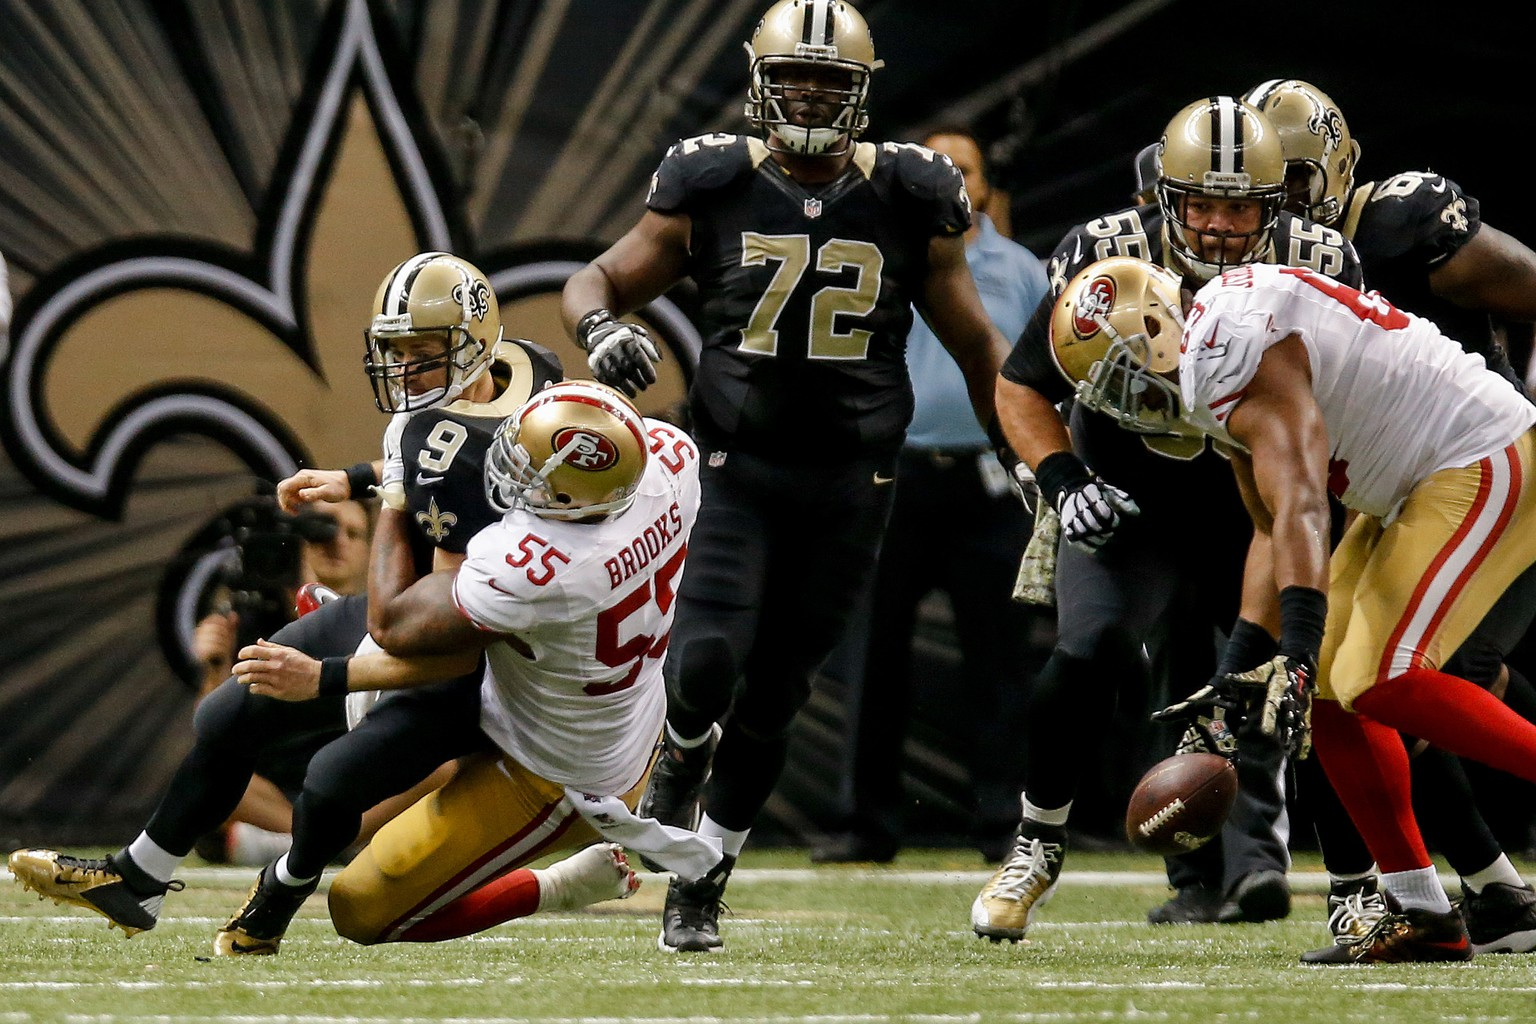 Nov 9, 2014; New Orleans, LA, USA; San Francisco 49ers outside linebacker Ahmad Brooks (55) sacks New Orleans Saints quarterback Drew Brees (9) in overtime at Mercedes-Benz Superdome. The 49ers won 27-24 in overtime. Mandatory Credit: Derick E. Hingle-USA TODAY Sports